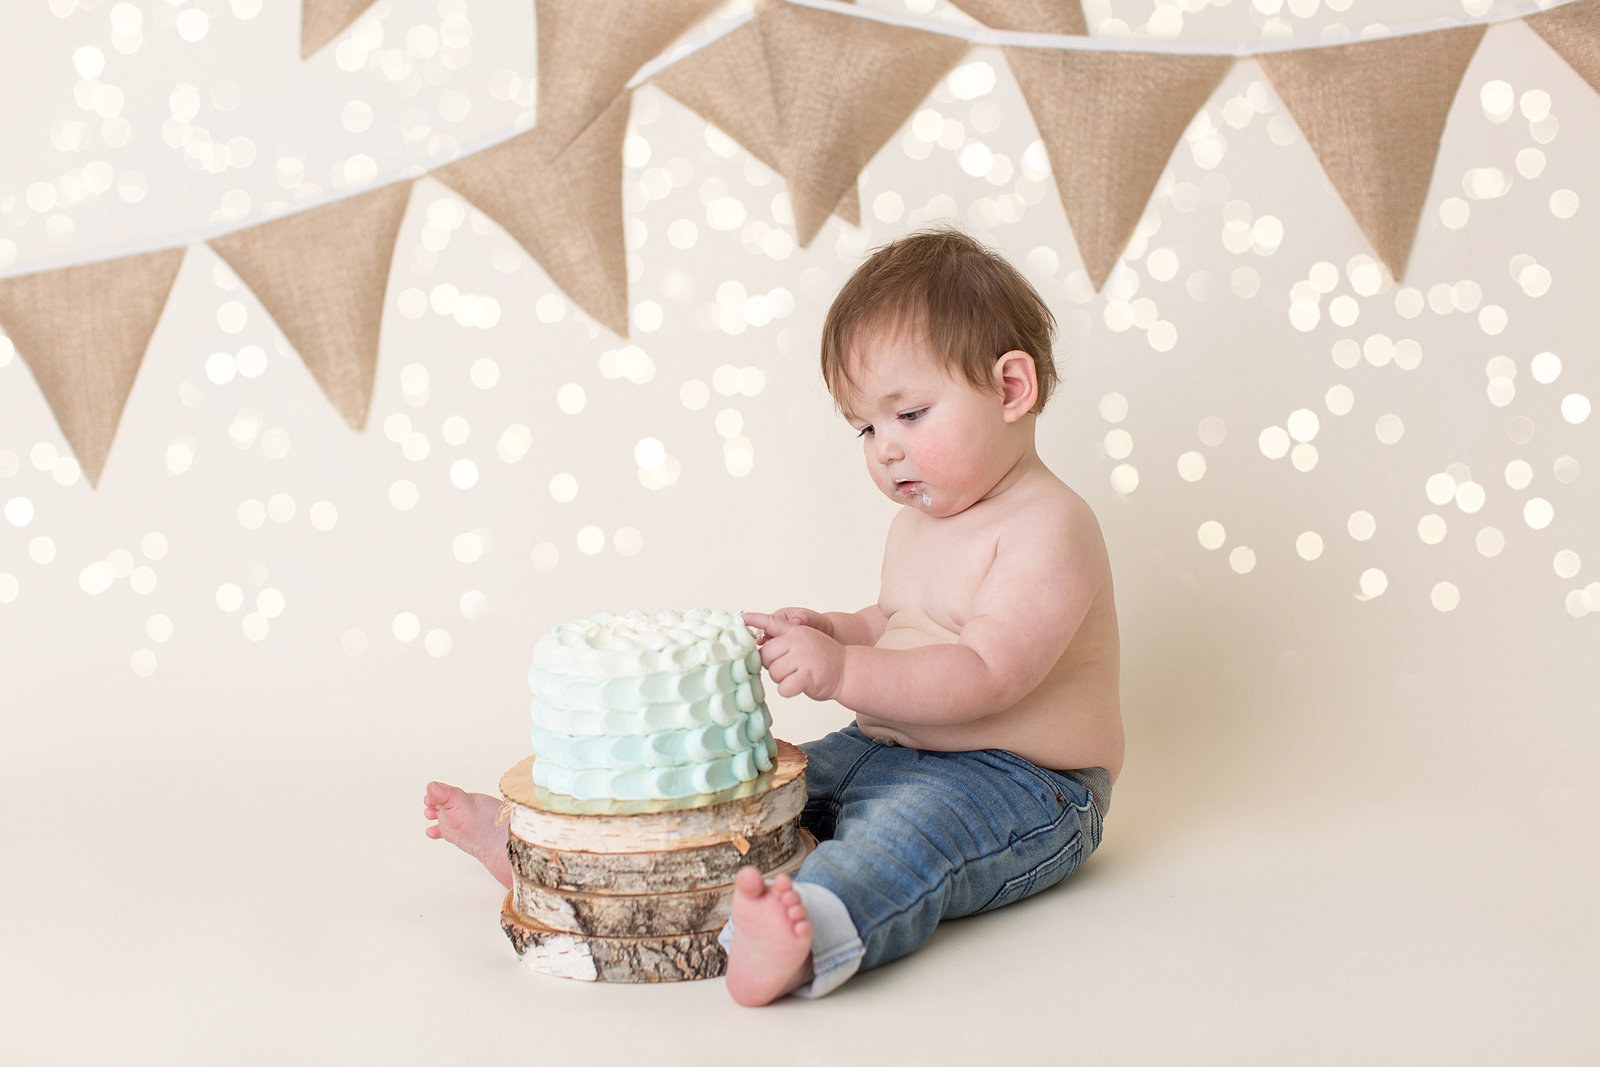 boy touches frosting on birthday cake